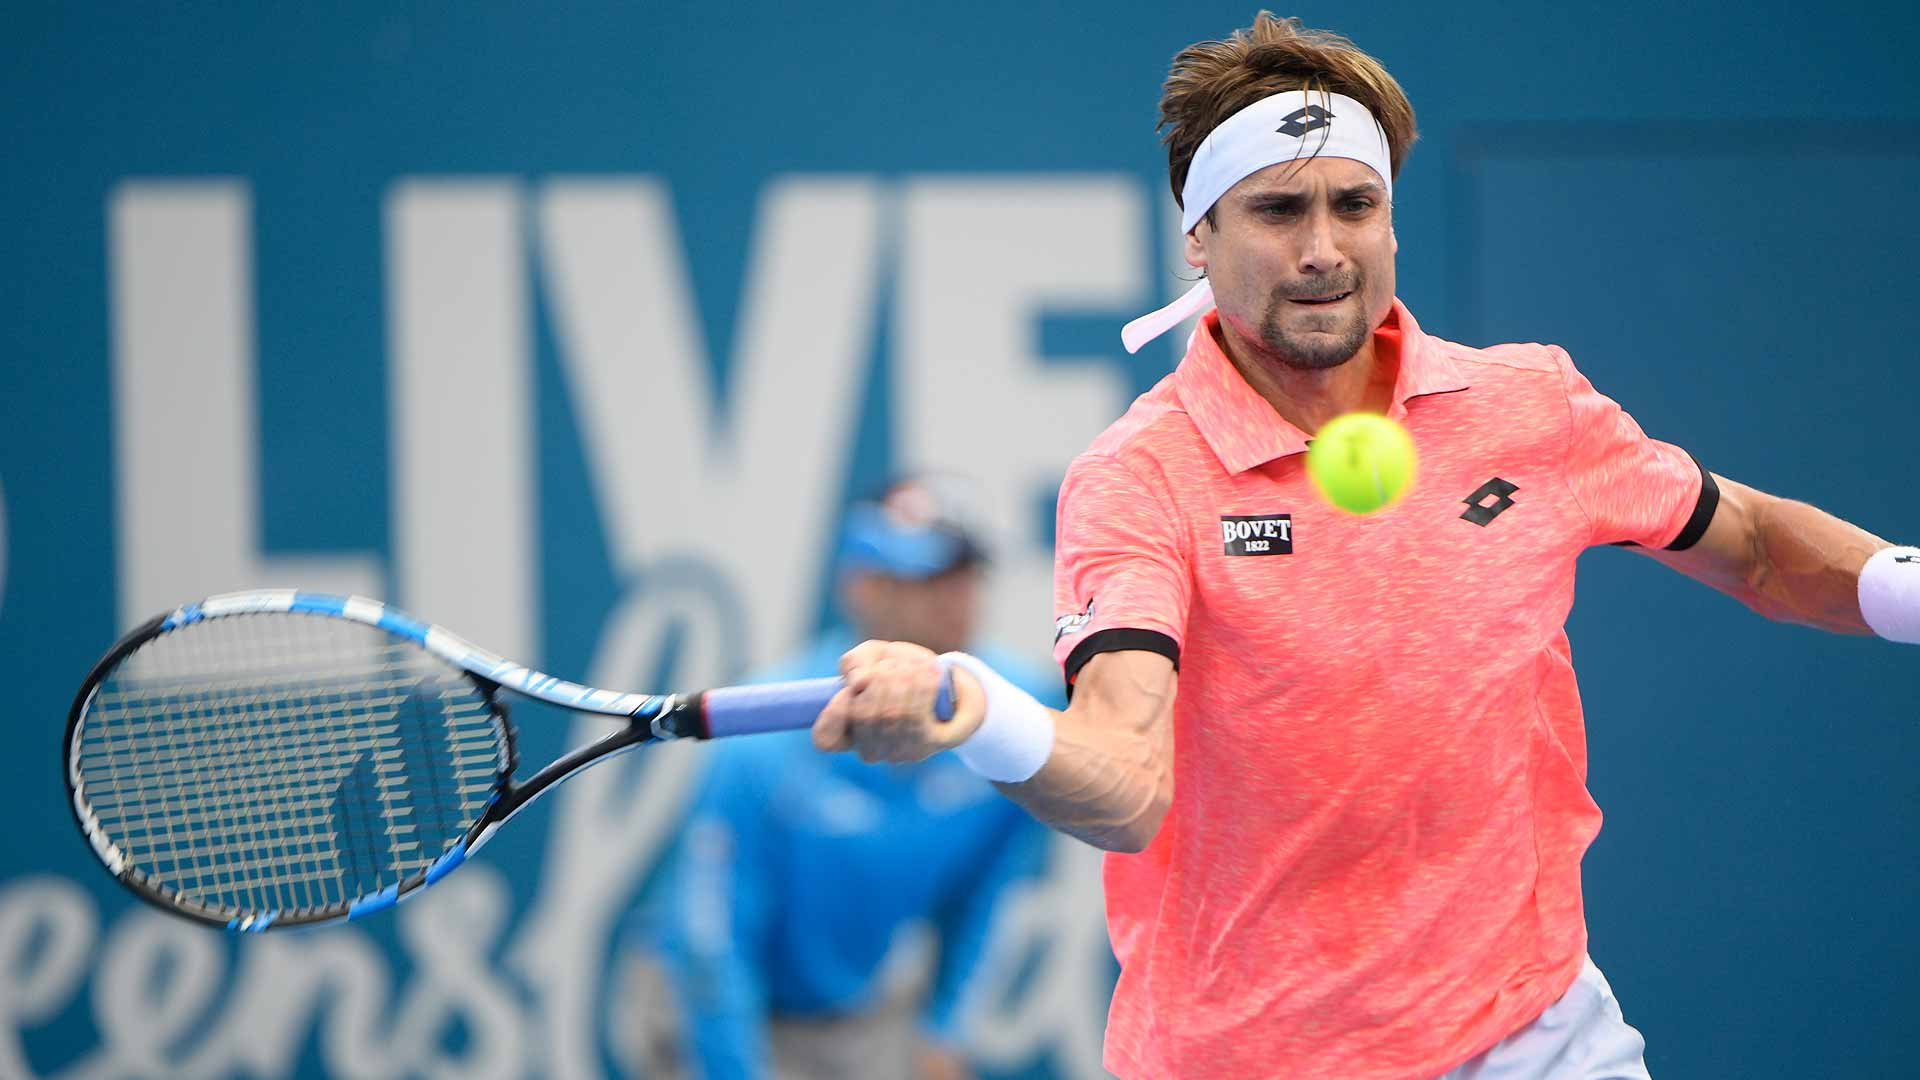 David Ferrer enjoys a successful start to 2017 in Brisbane.